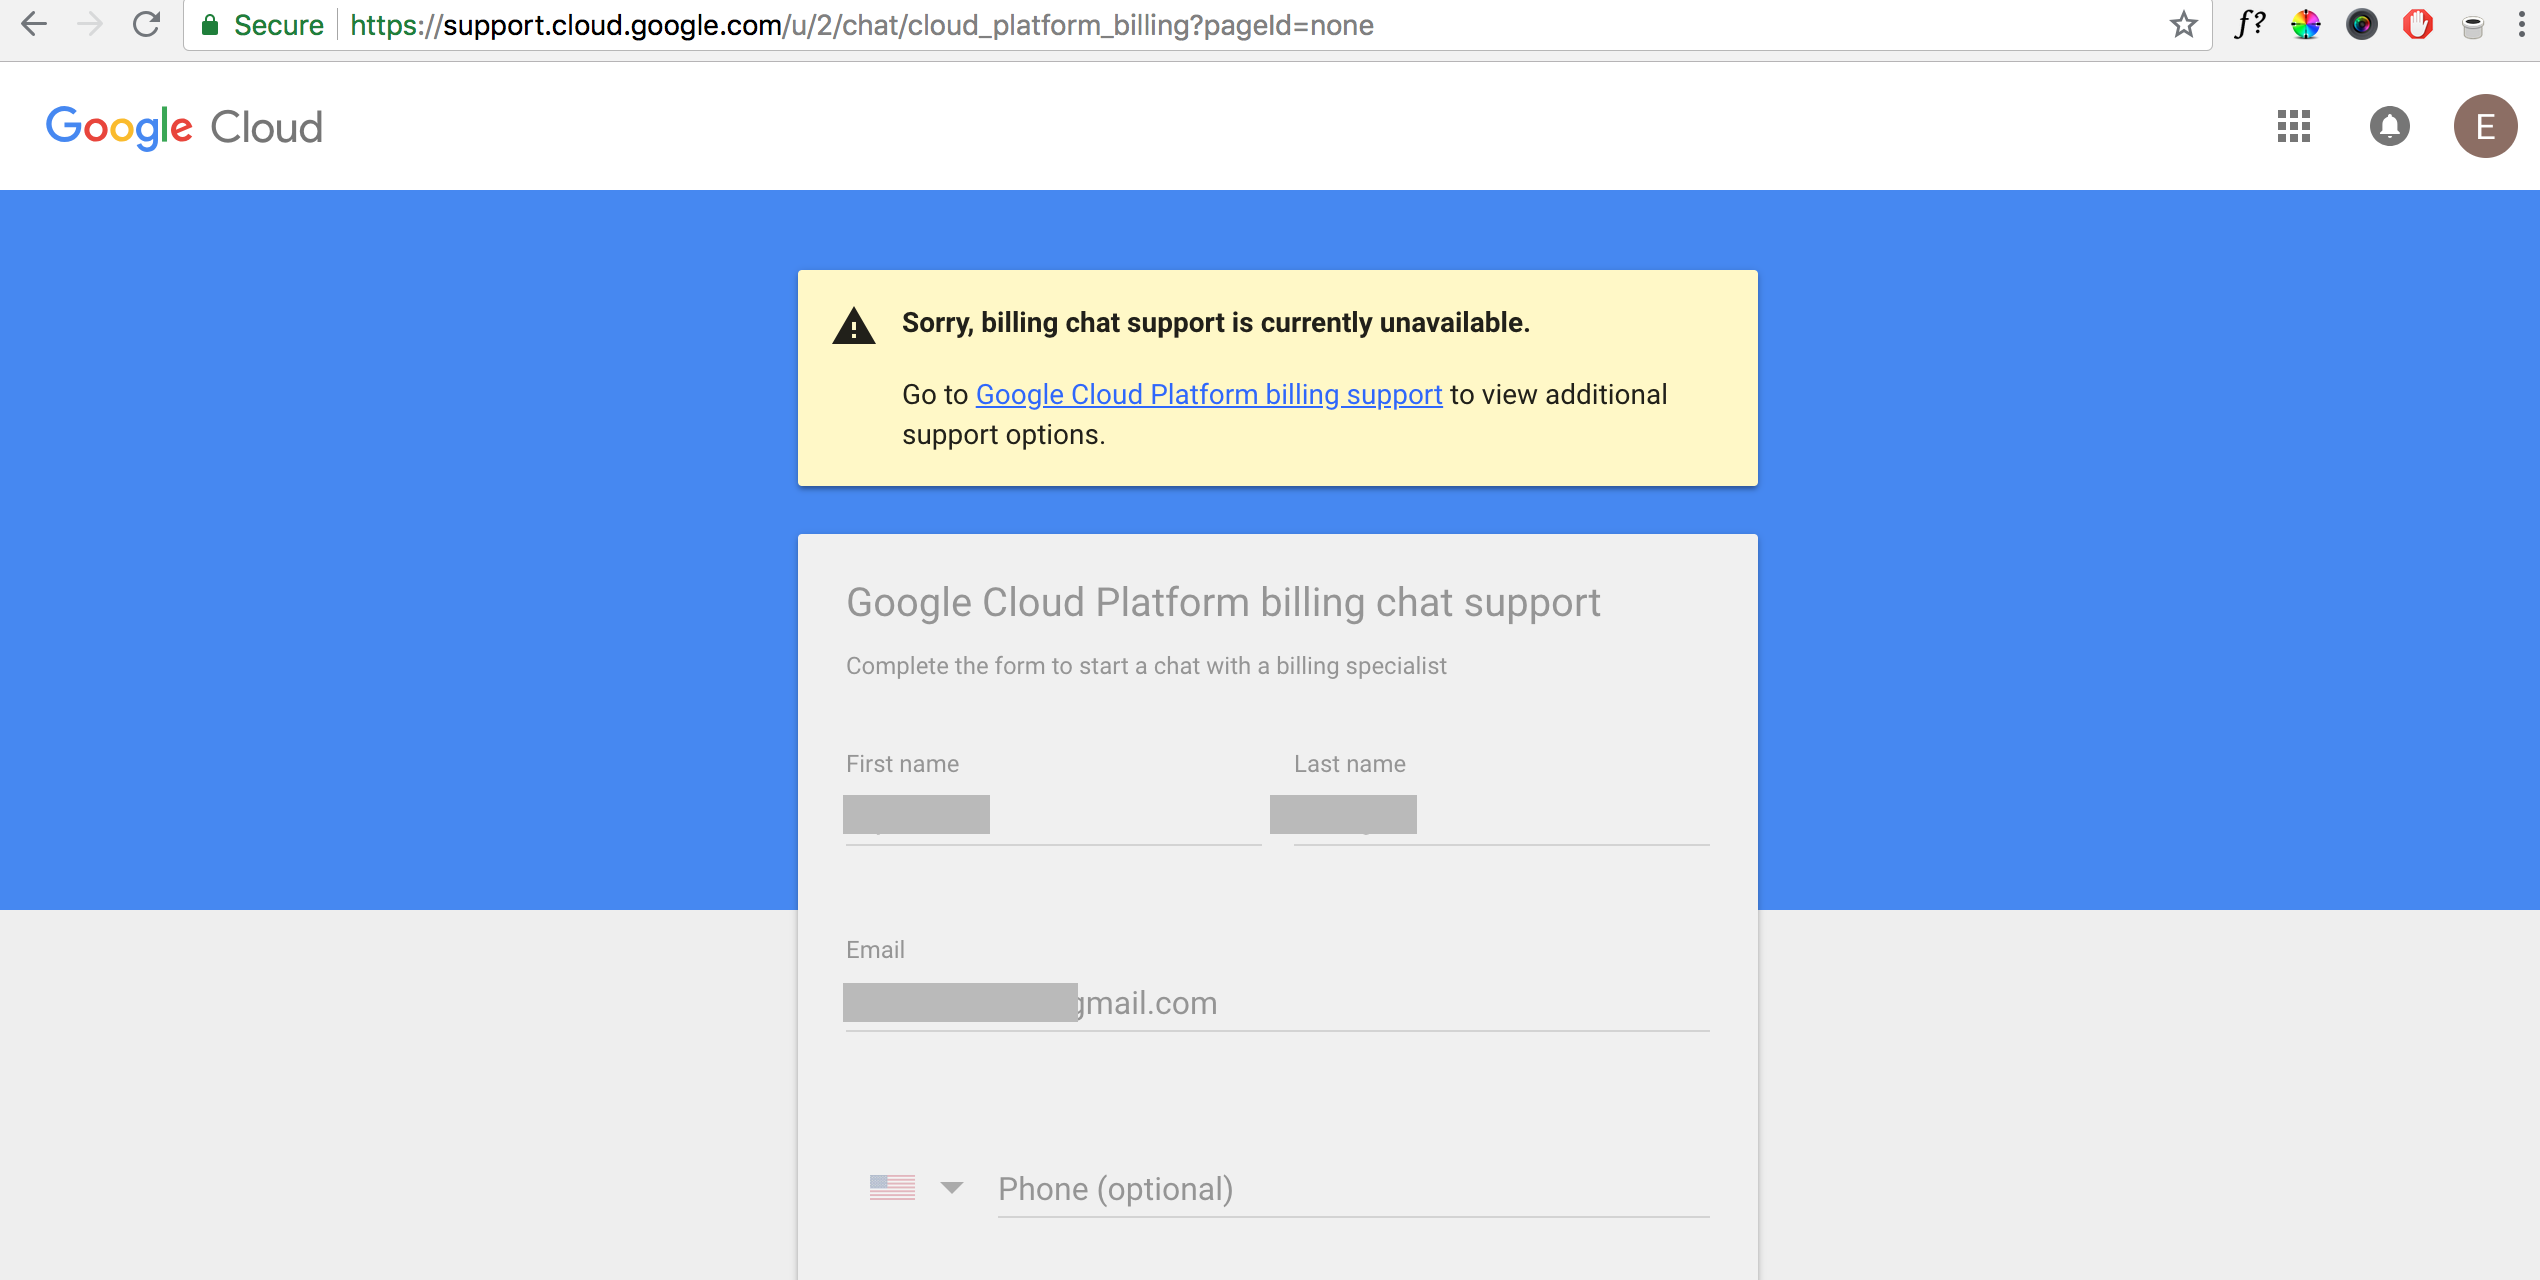 Why you should not use Google Cloud  - Punch a Server - Medium